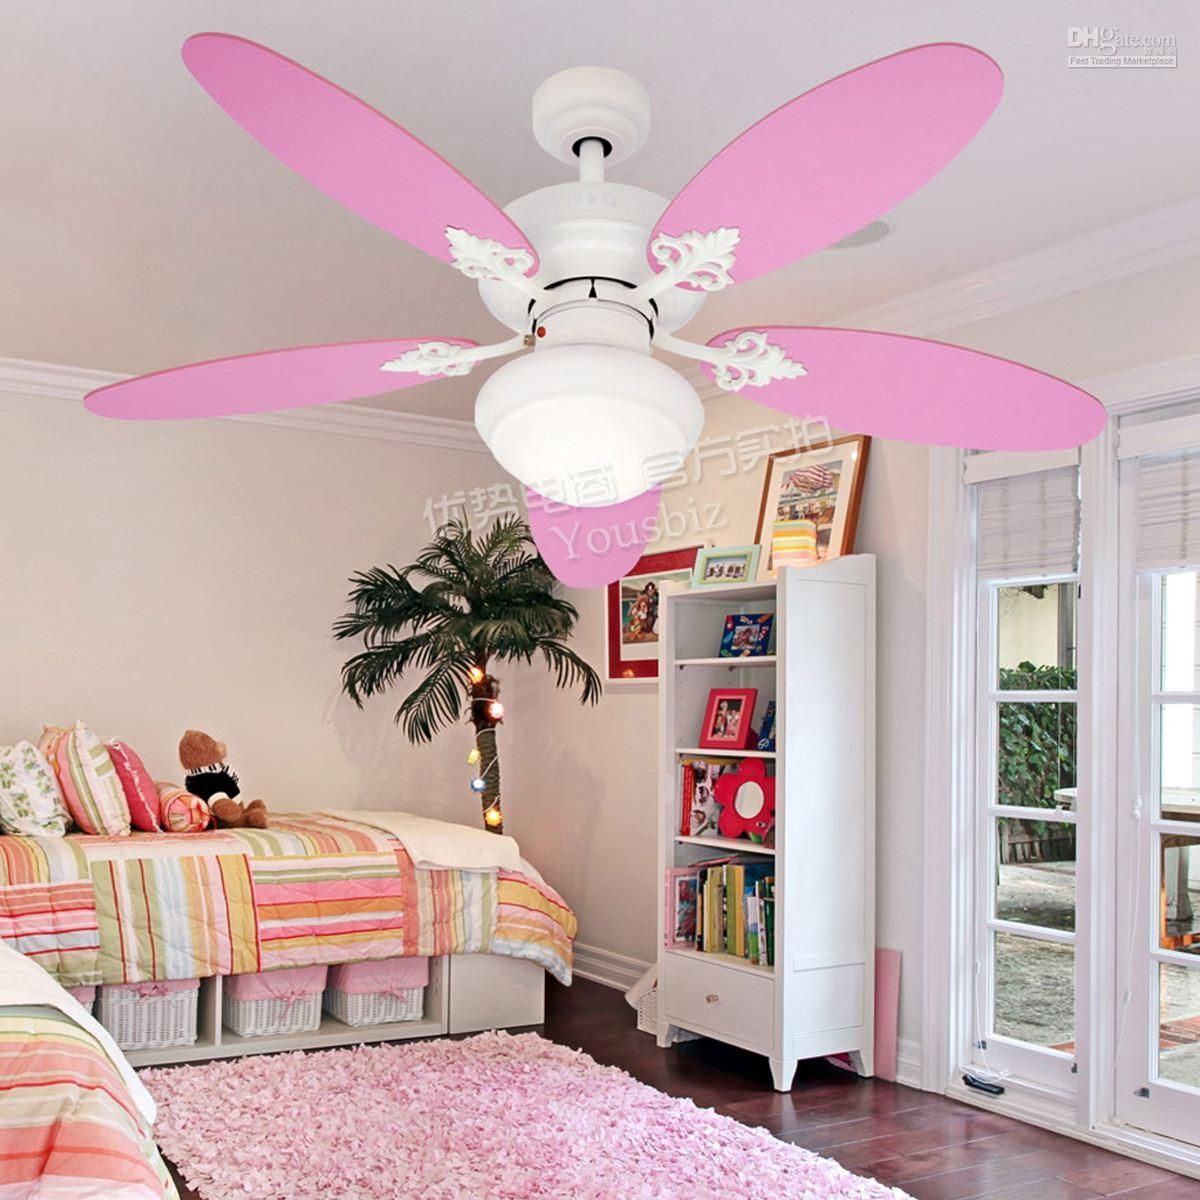 Ceiling Fan Girls Room Pink Ceiling Fans With Lights For Teenage Girl Bedroom Interior